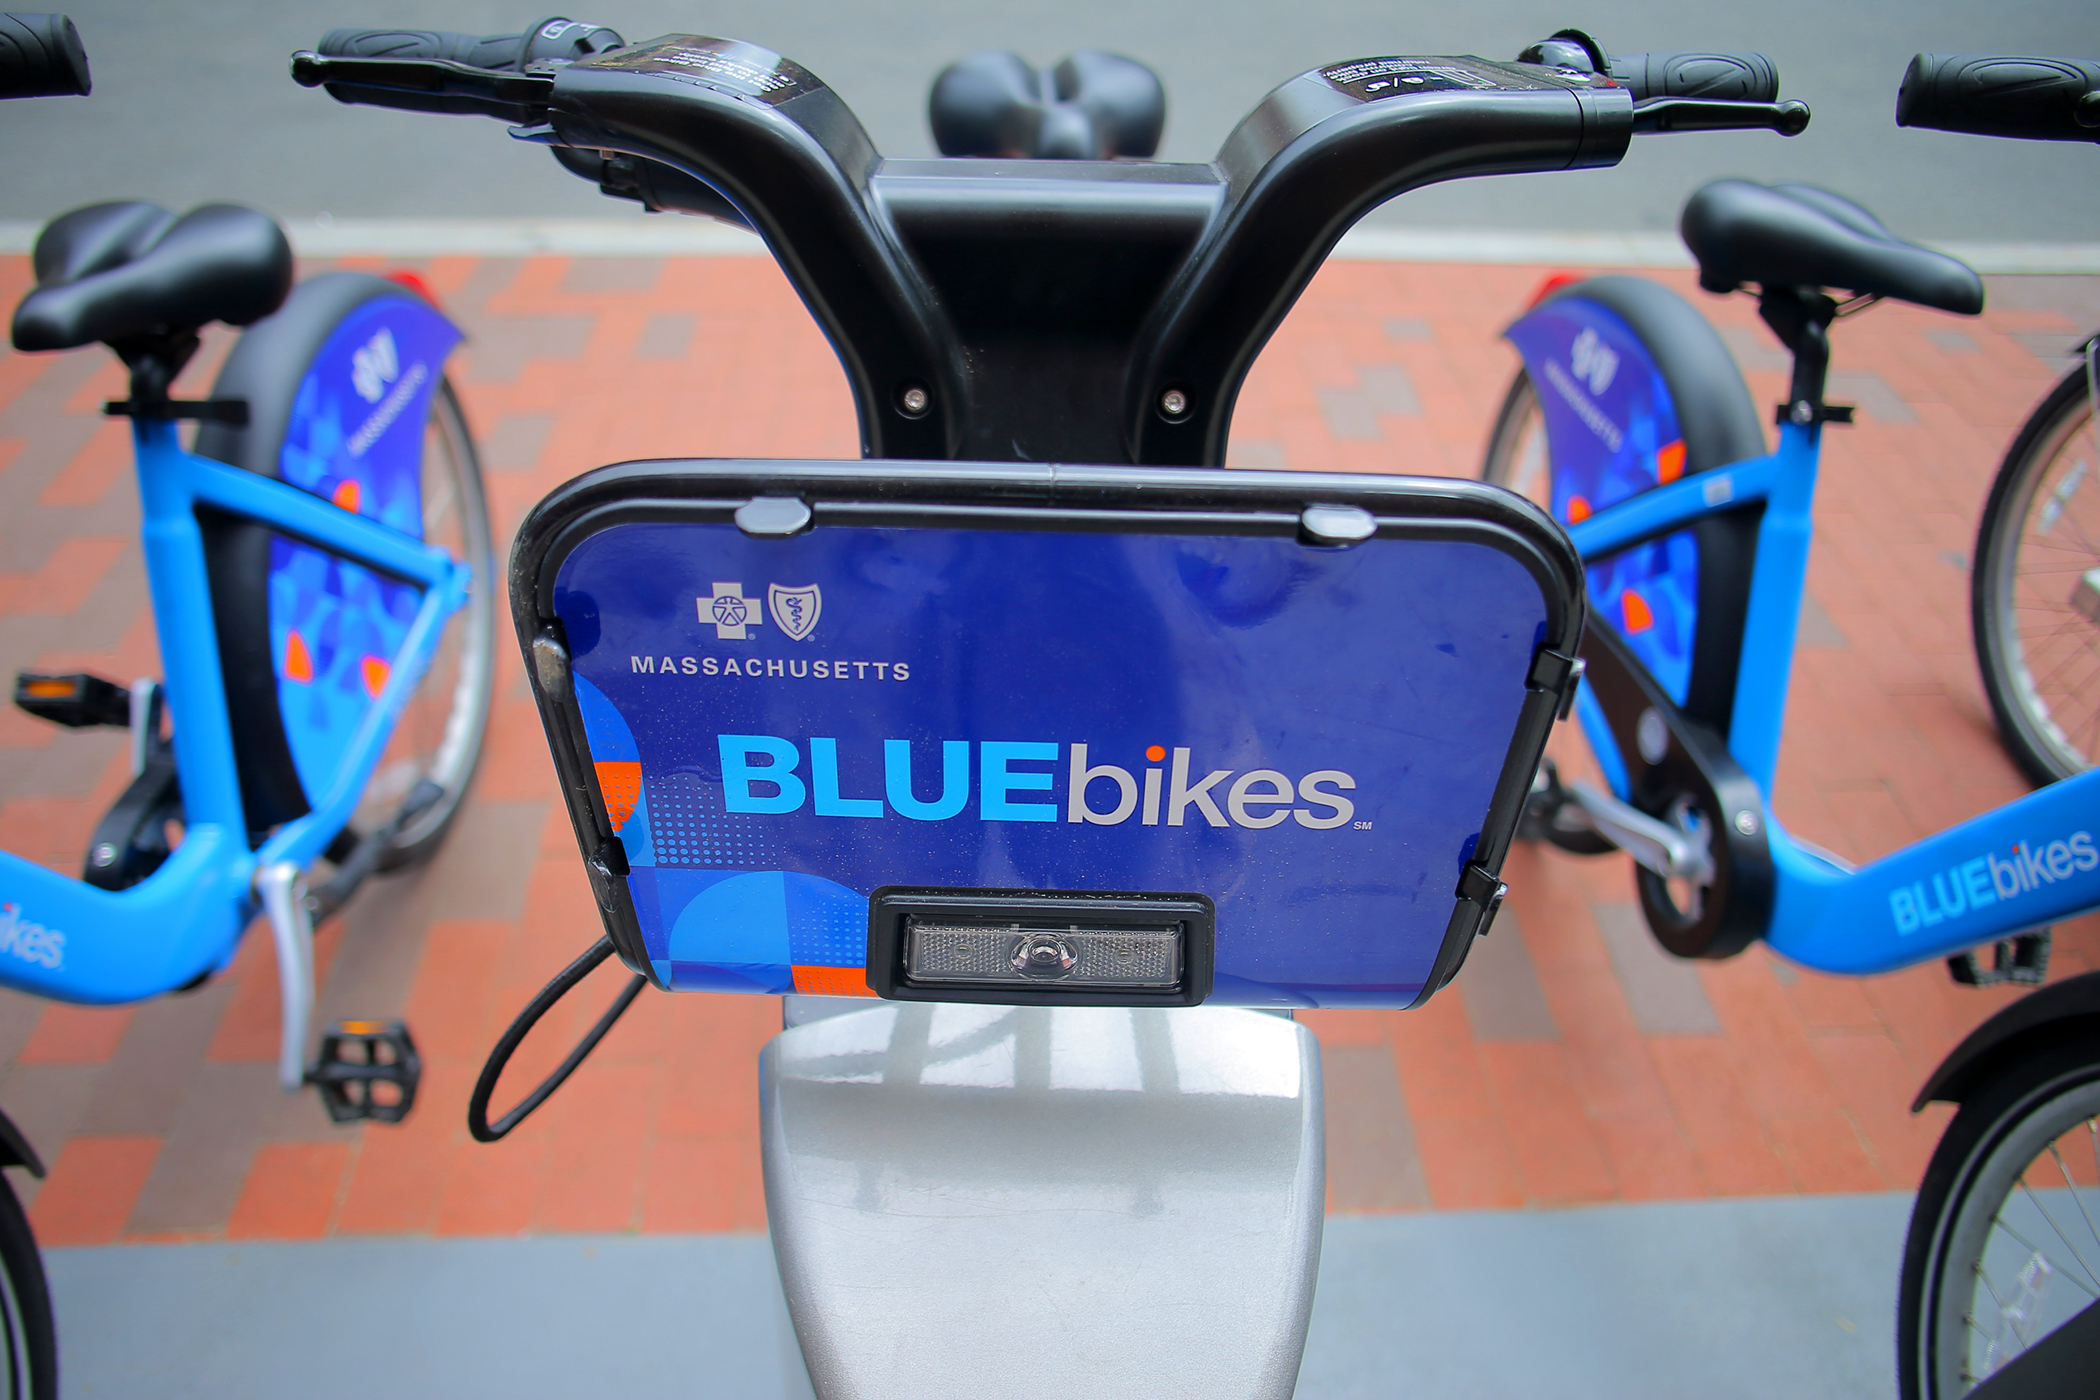 Boston bike-shares: A guide to the rides in the city and its surrounding region